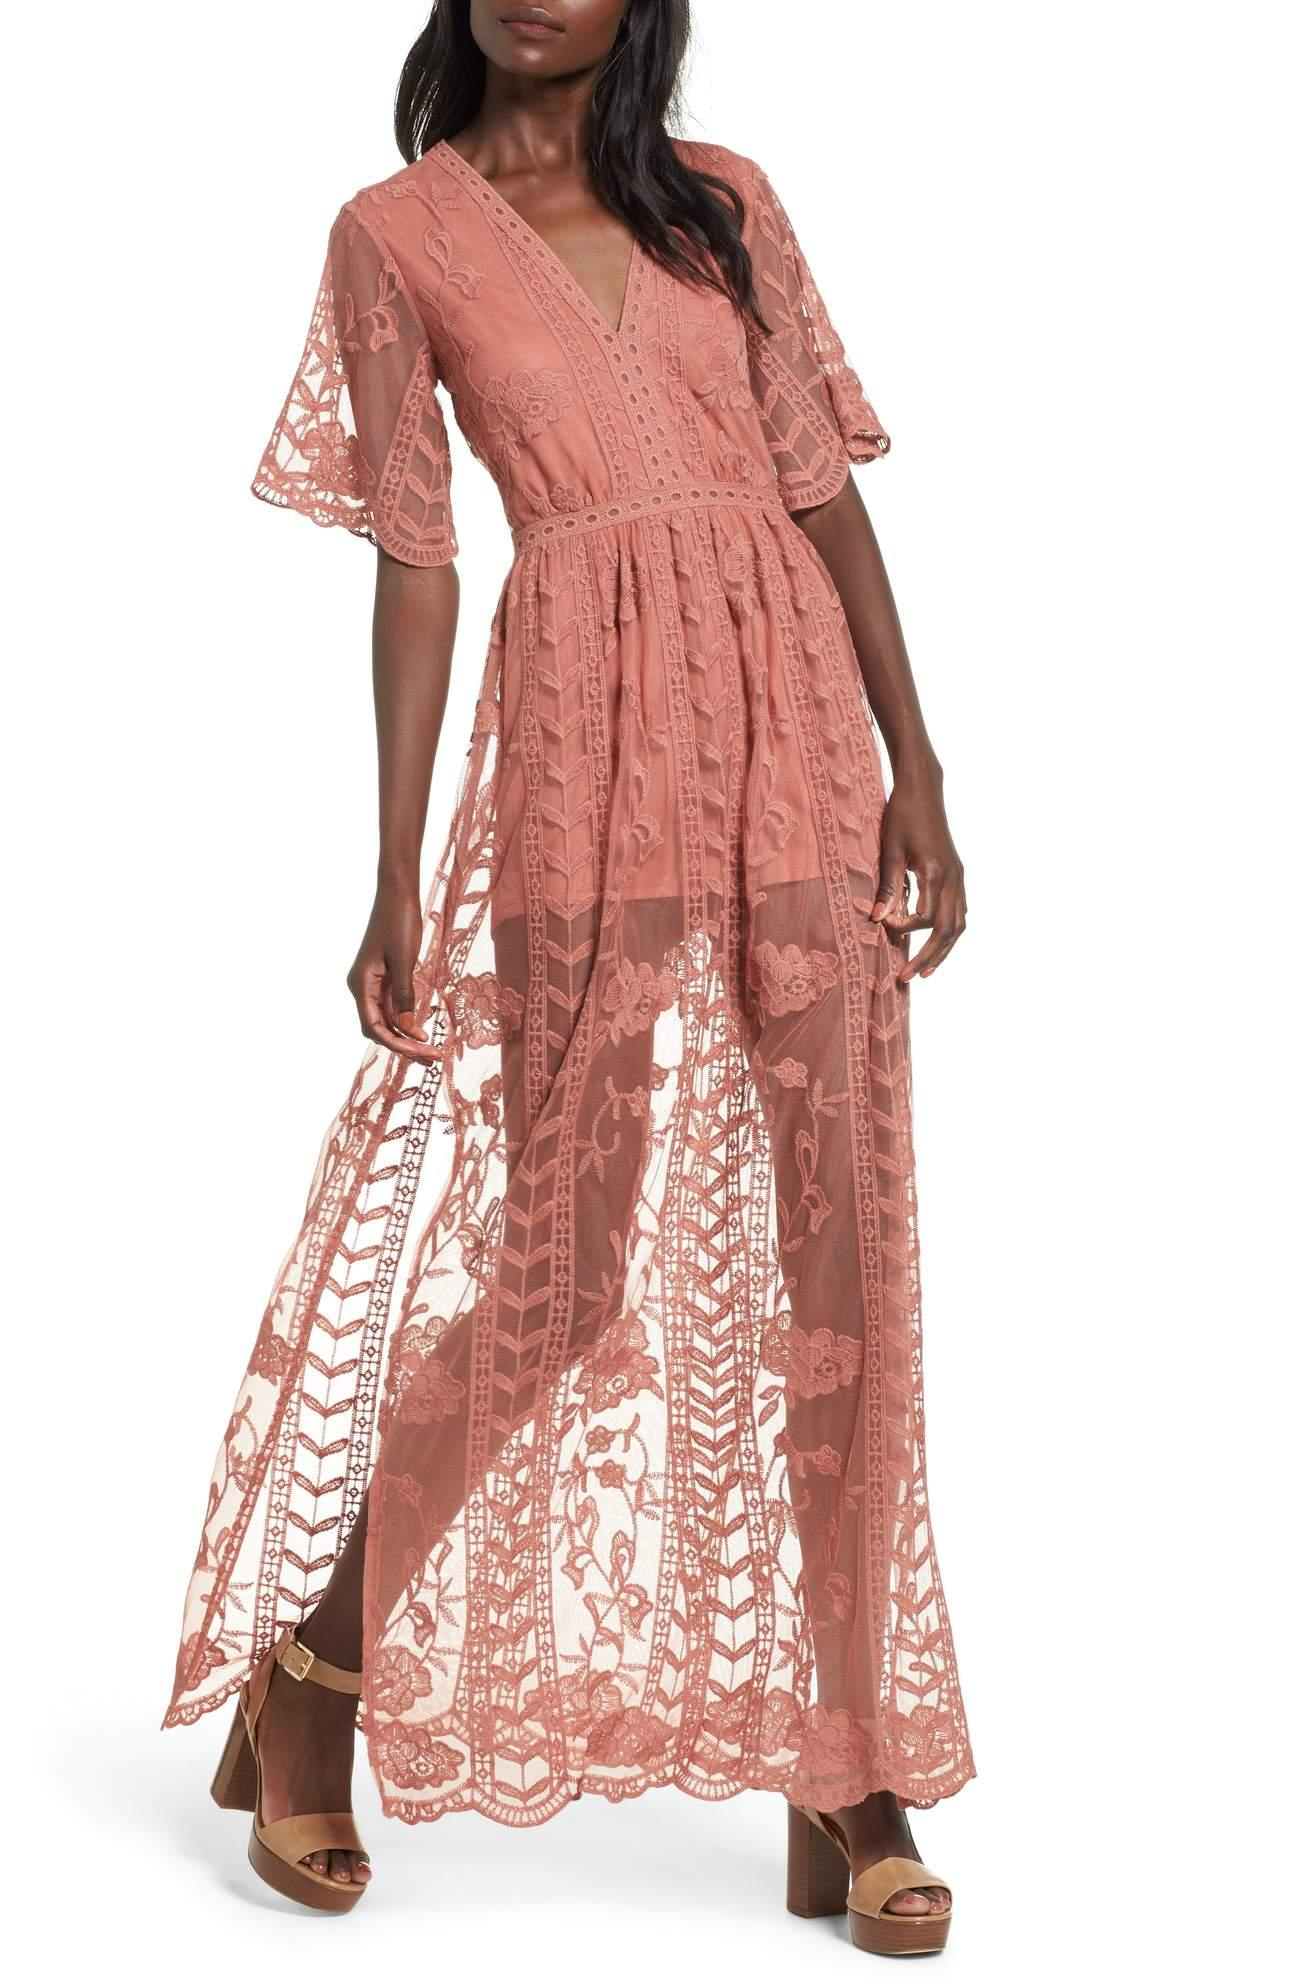 <p>This Lace Overlay Romper/SOCIALITE is so romantic! The mix of the sheer and lace is perfection.{&amp;nbsp;} Also, you'll see a lot of the 'burnt rose' color this Spring - its a bit bolder than the classic Spring pastels we are used to. $79.00{&amp;nbsp;} at Nordstrom. (Image: Nordstrom){&amp;nbsp;}</p><p></p>